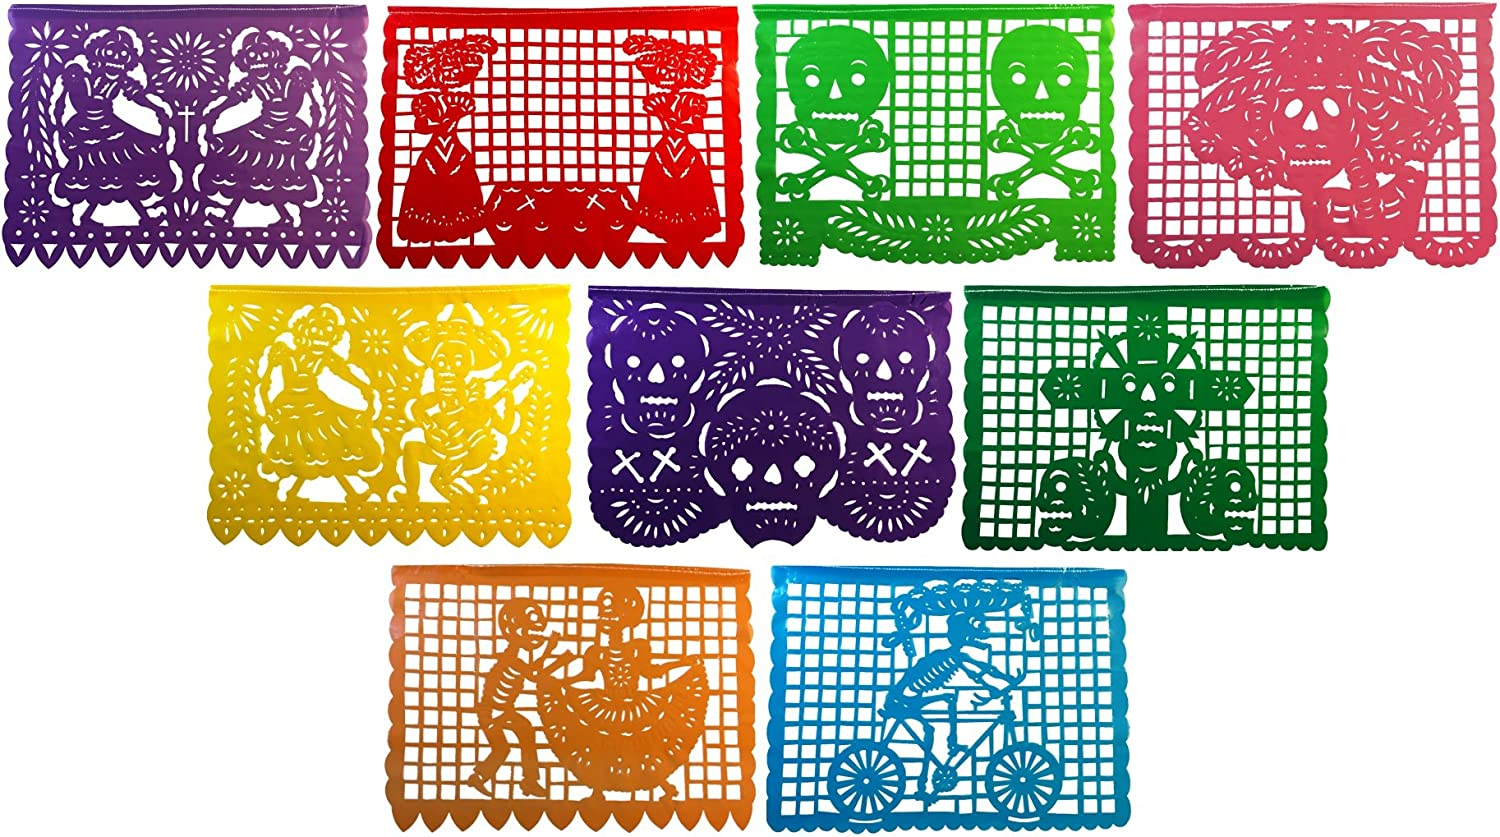 Paper Full of Wishes Large Plastic Day of The Dead Papel Picado Banner - Un Dia de Memoria - Decorations for Dia De Los Muertos - Banner has 9 Large Panels and is 15 Ft Long Hanging